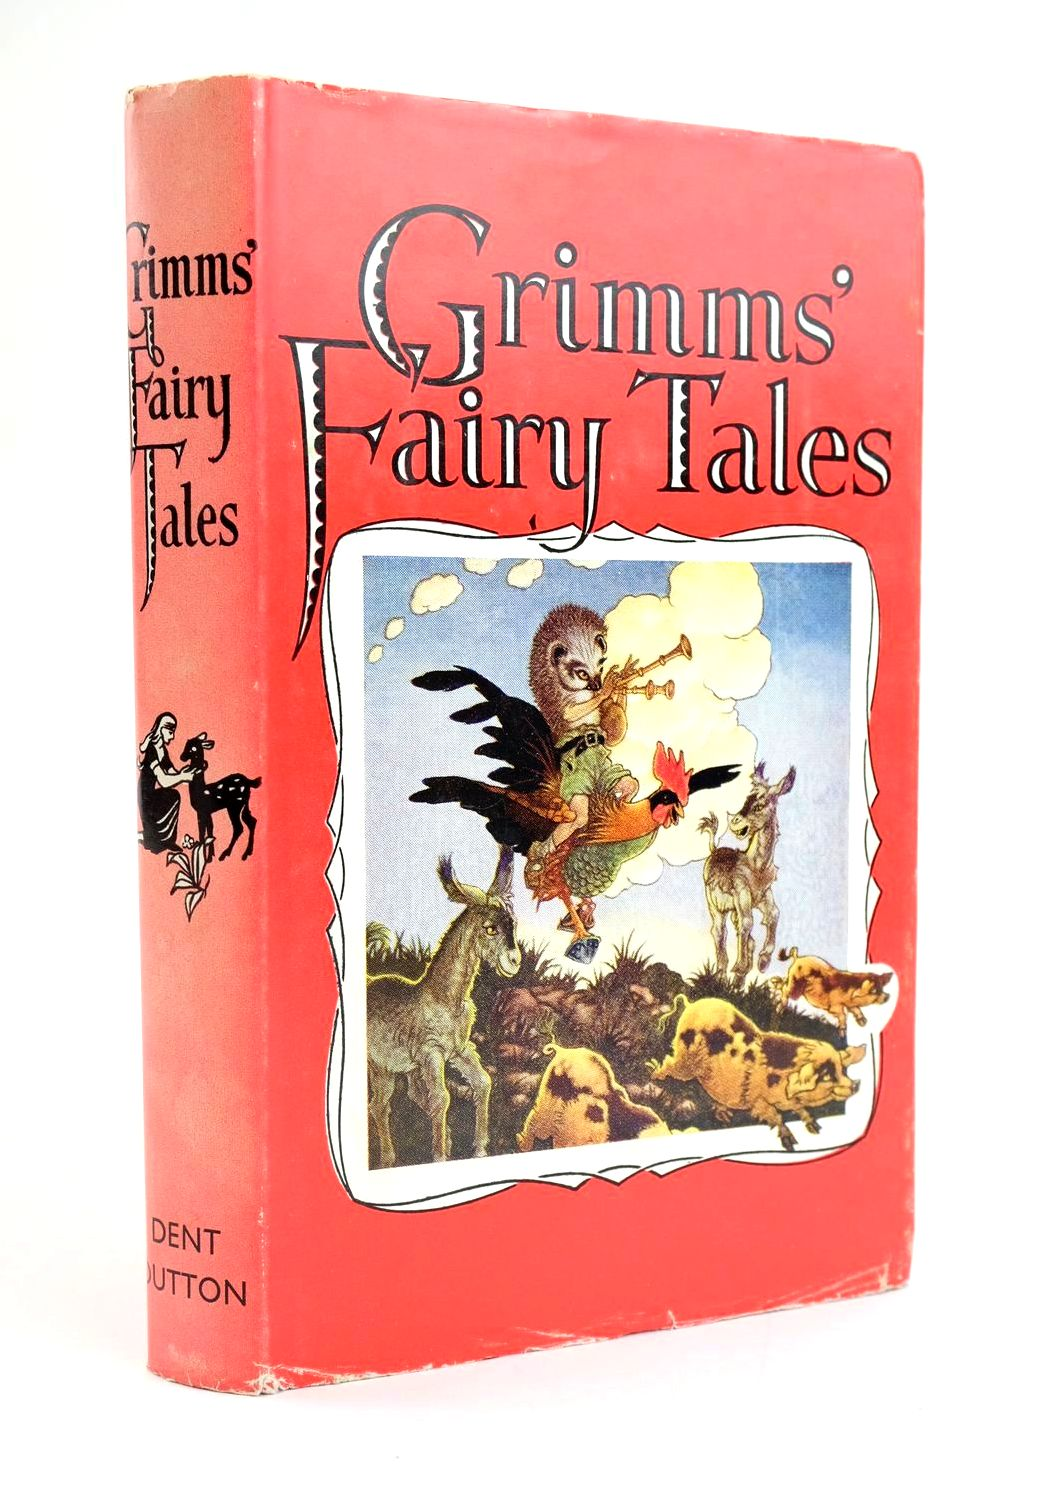 Photo of GRIMMS' FAIRY TALES written by Grimm, Brothers illustrated by Folkard, Charles published by J.M. Dent & Sons Ltd. (STOCK CODE: 1319220)  for sale by Stella & Rose's Books